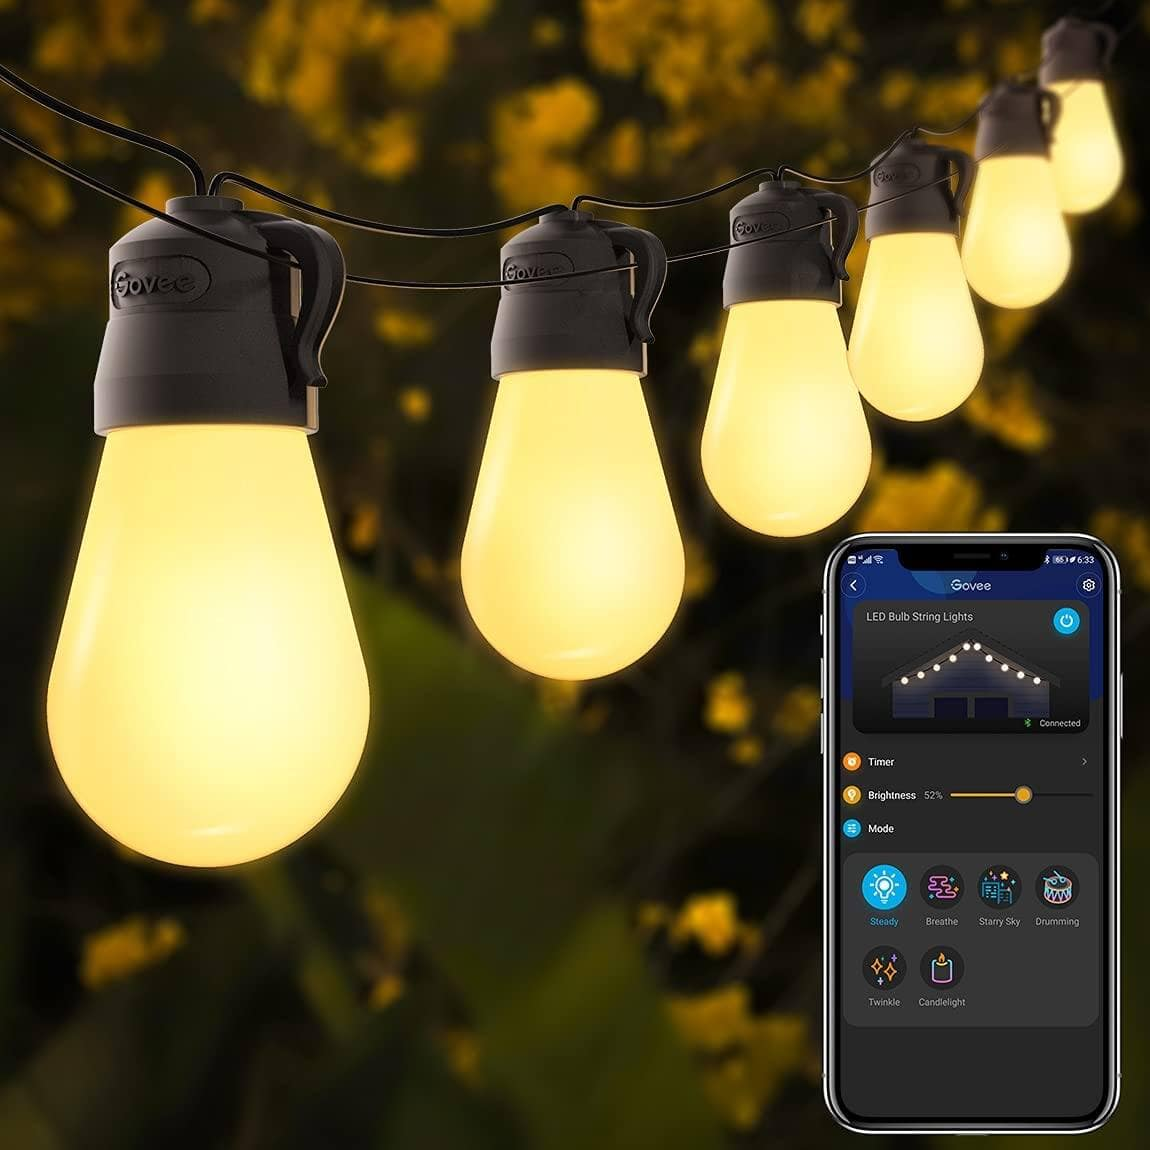 Govee 48ft Patio Lights w/ Bluetooth App Control, IP65 Waterproof Shatterproof Outdoor String Lights $25.99 + Free Shipping